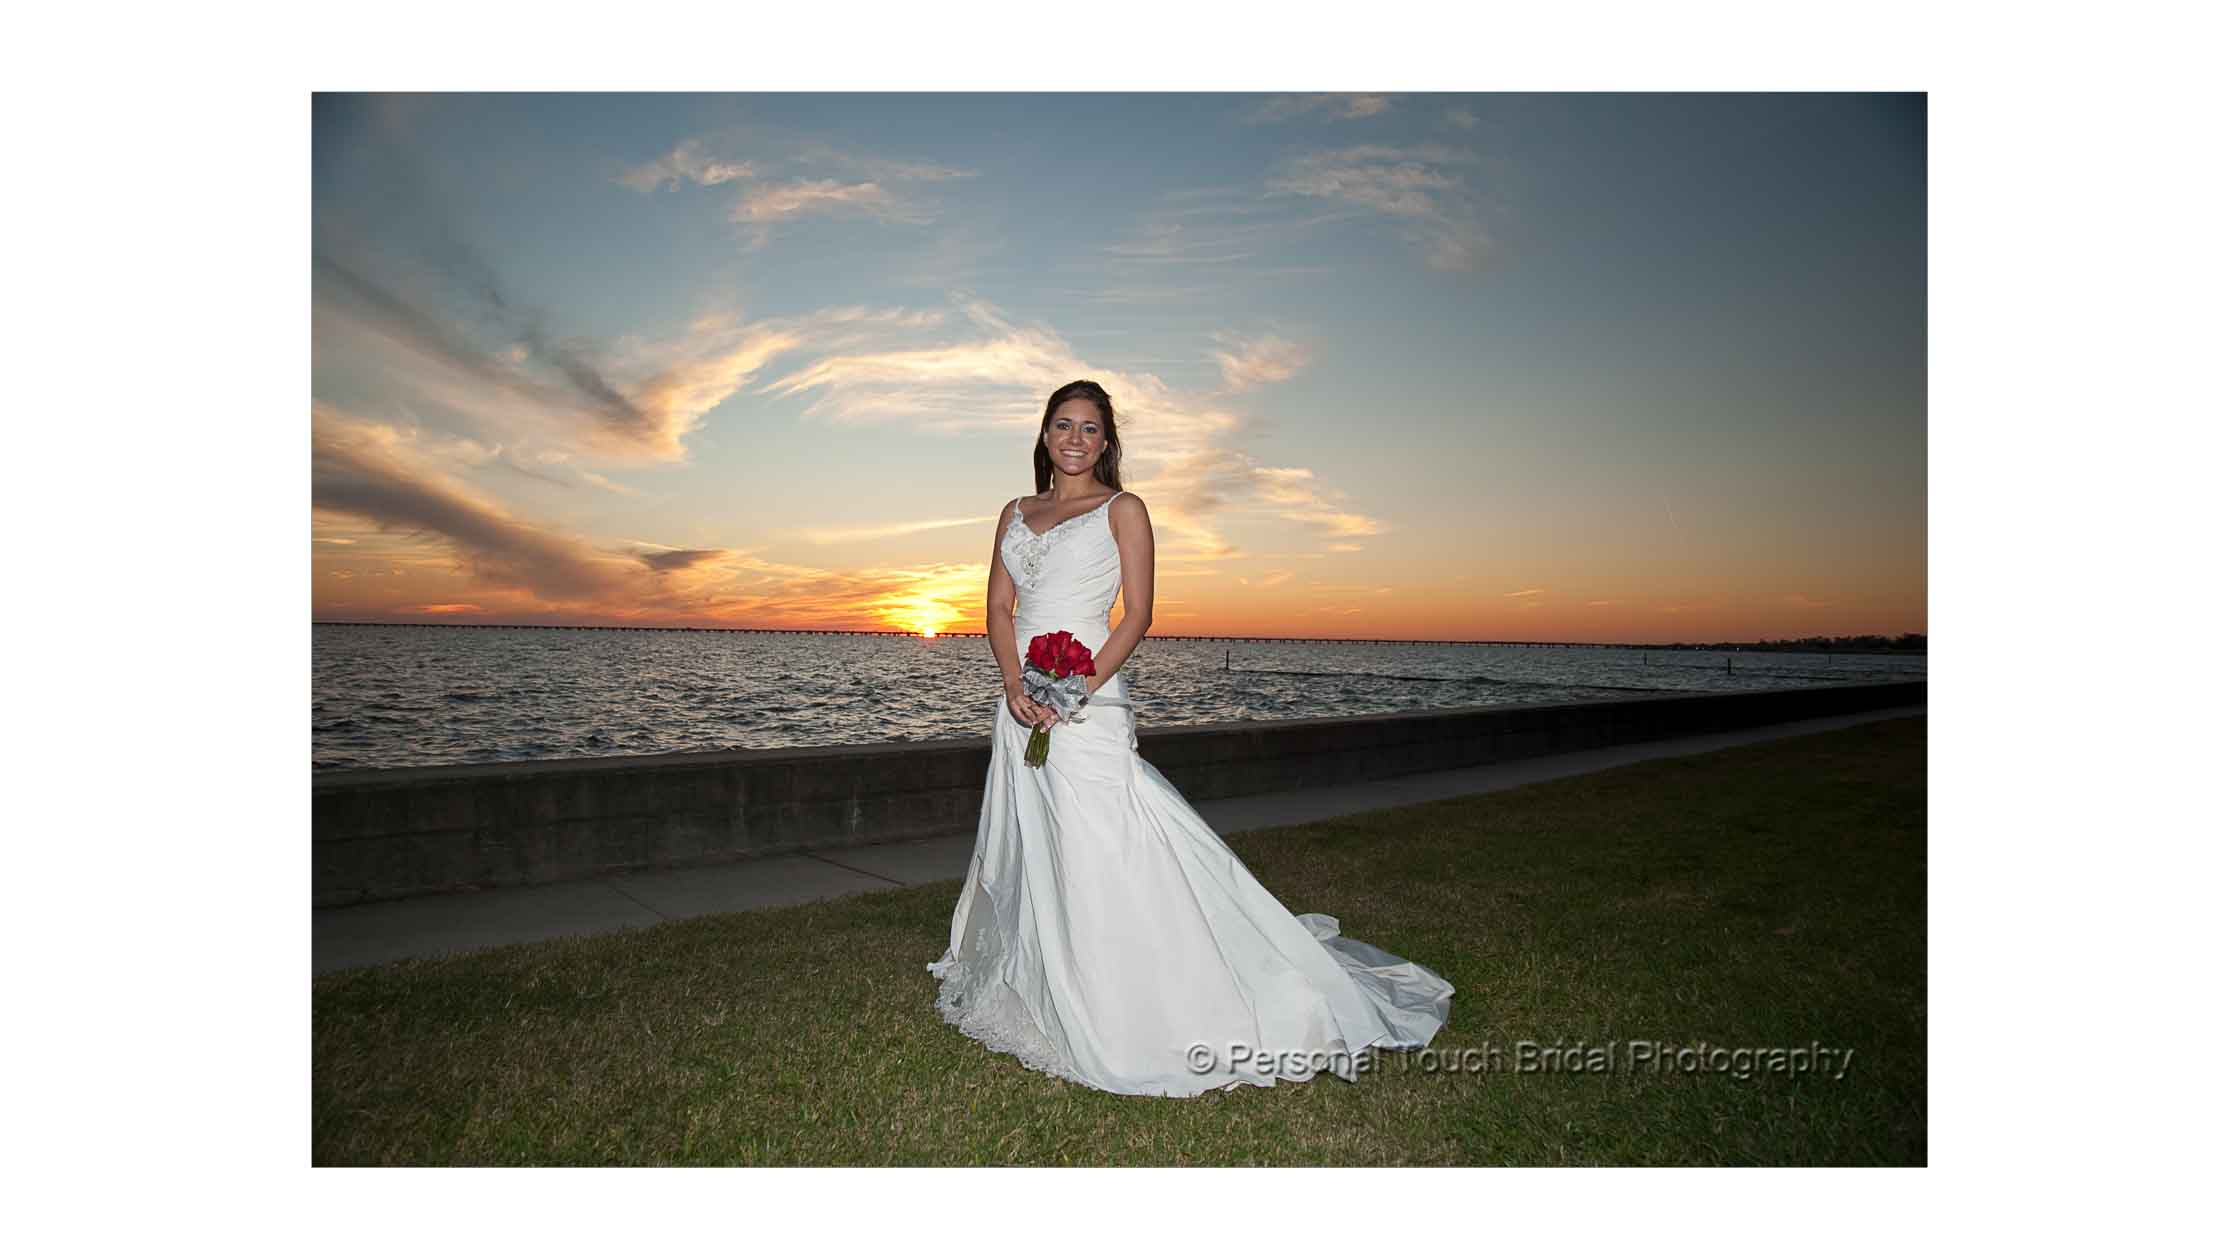 Personal Touch Divi Bridals-06